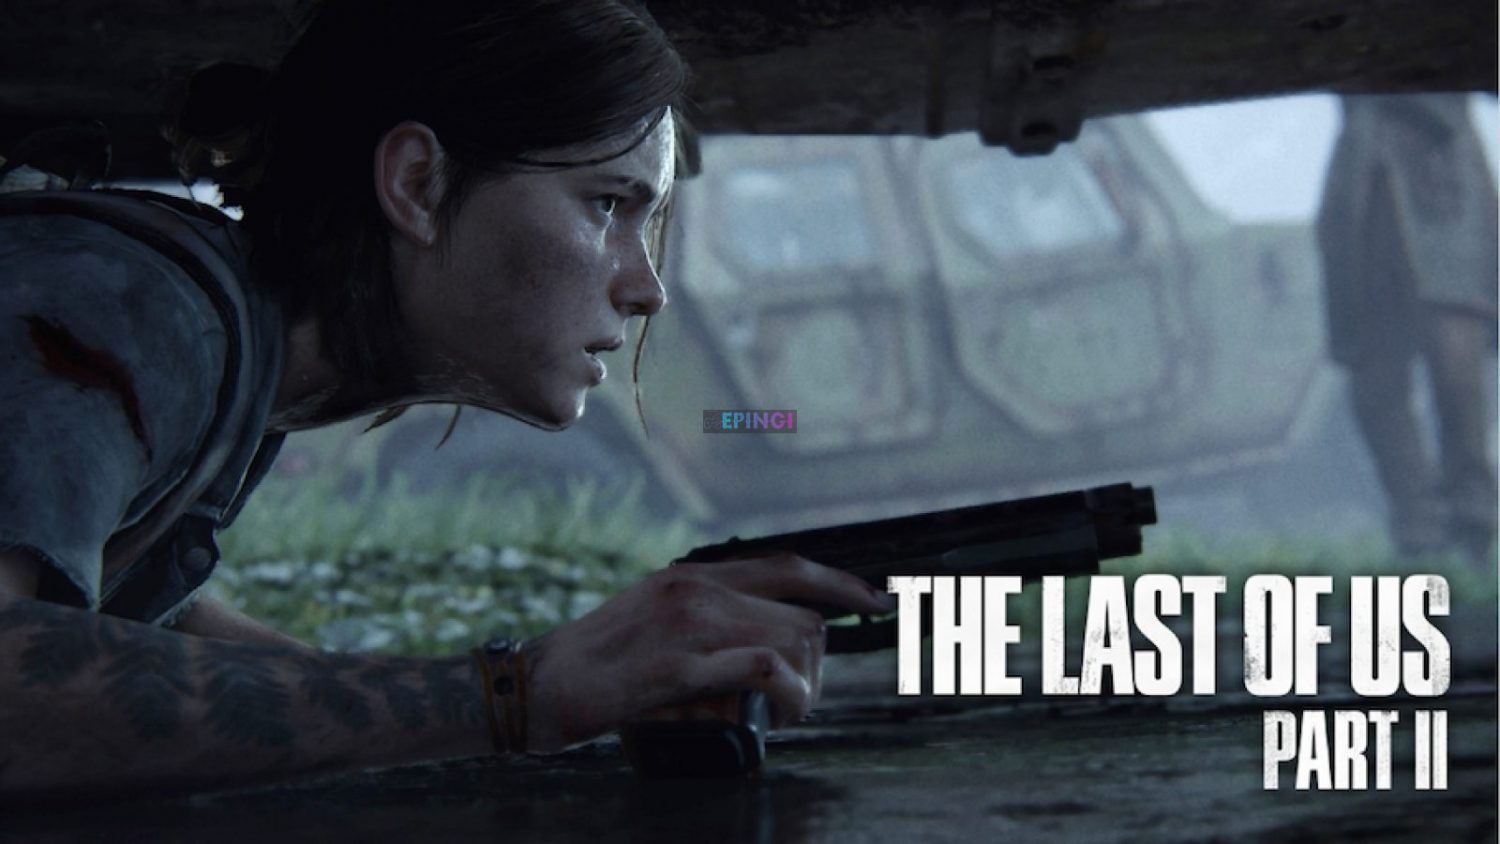 The Last of Us 2 PC Release: Is it Coming to PC?